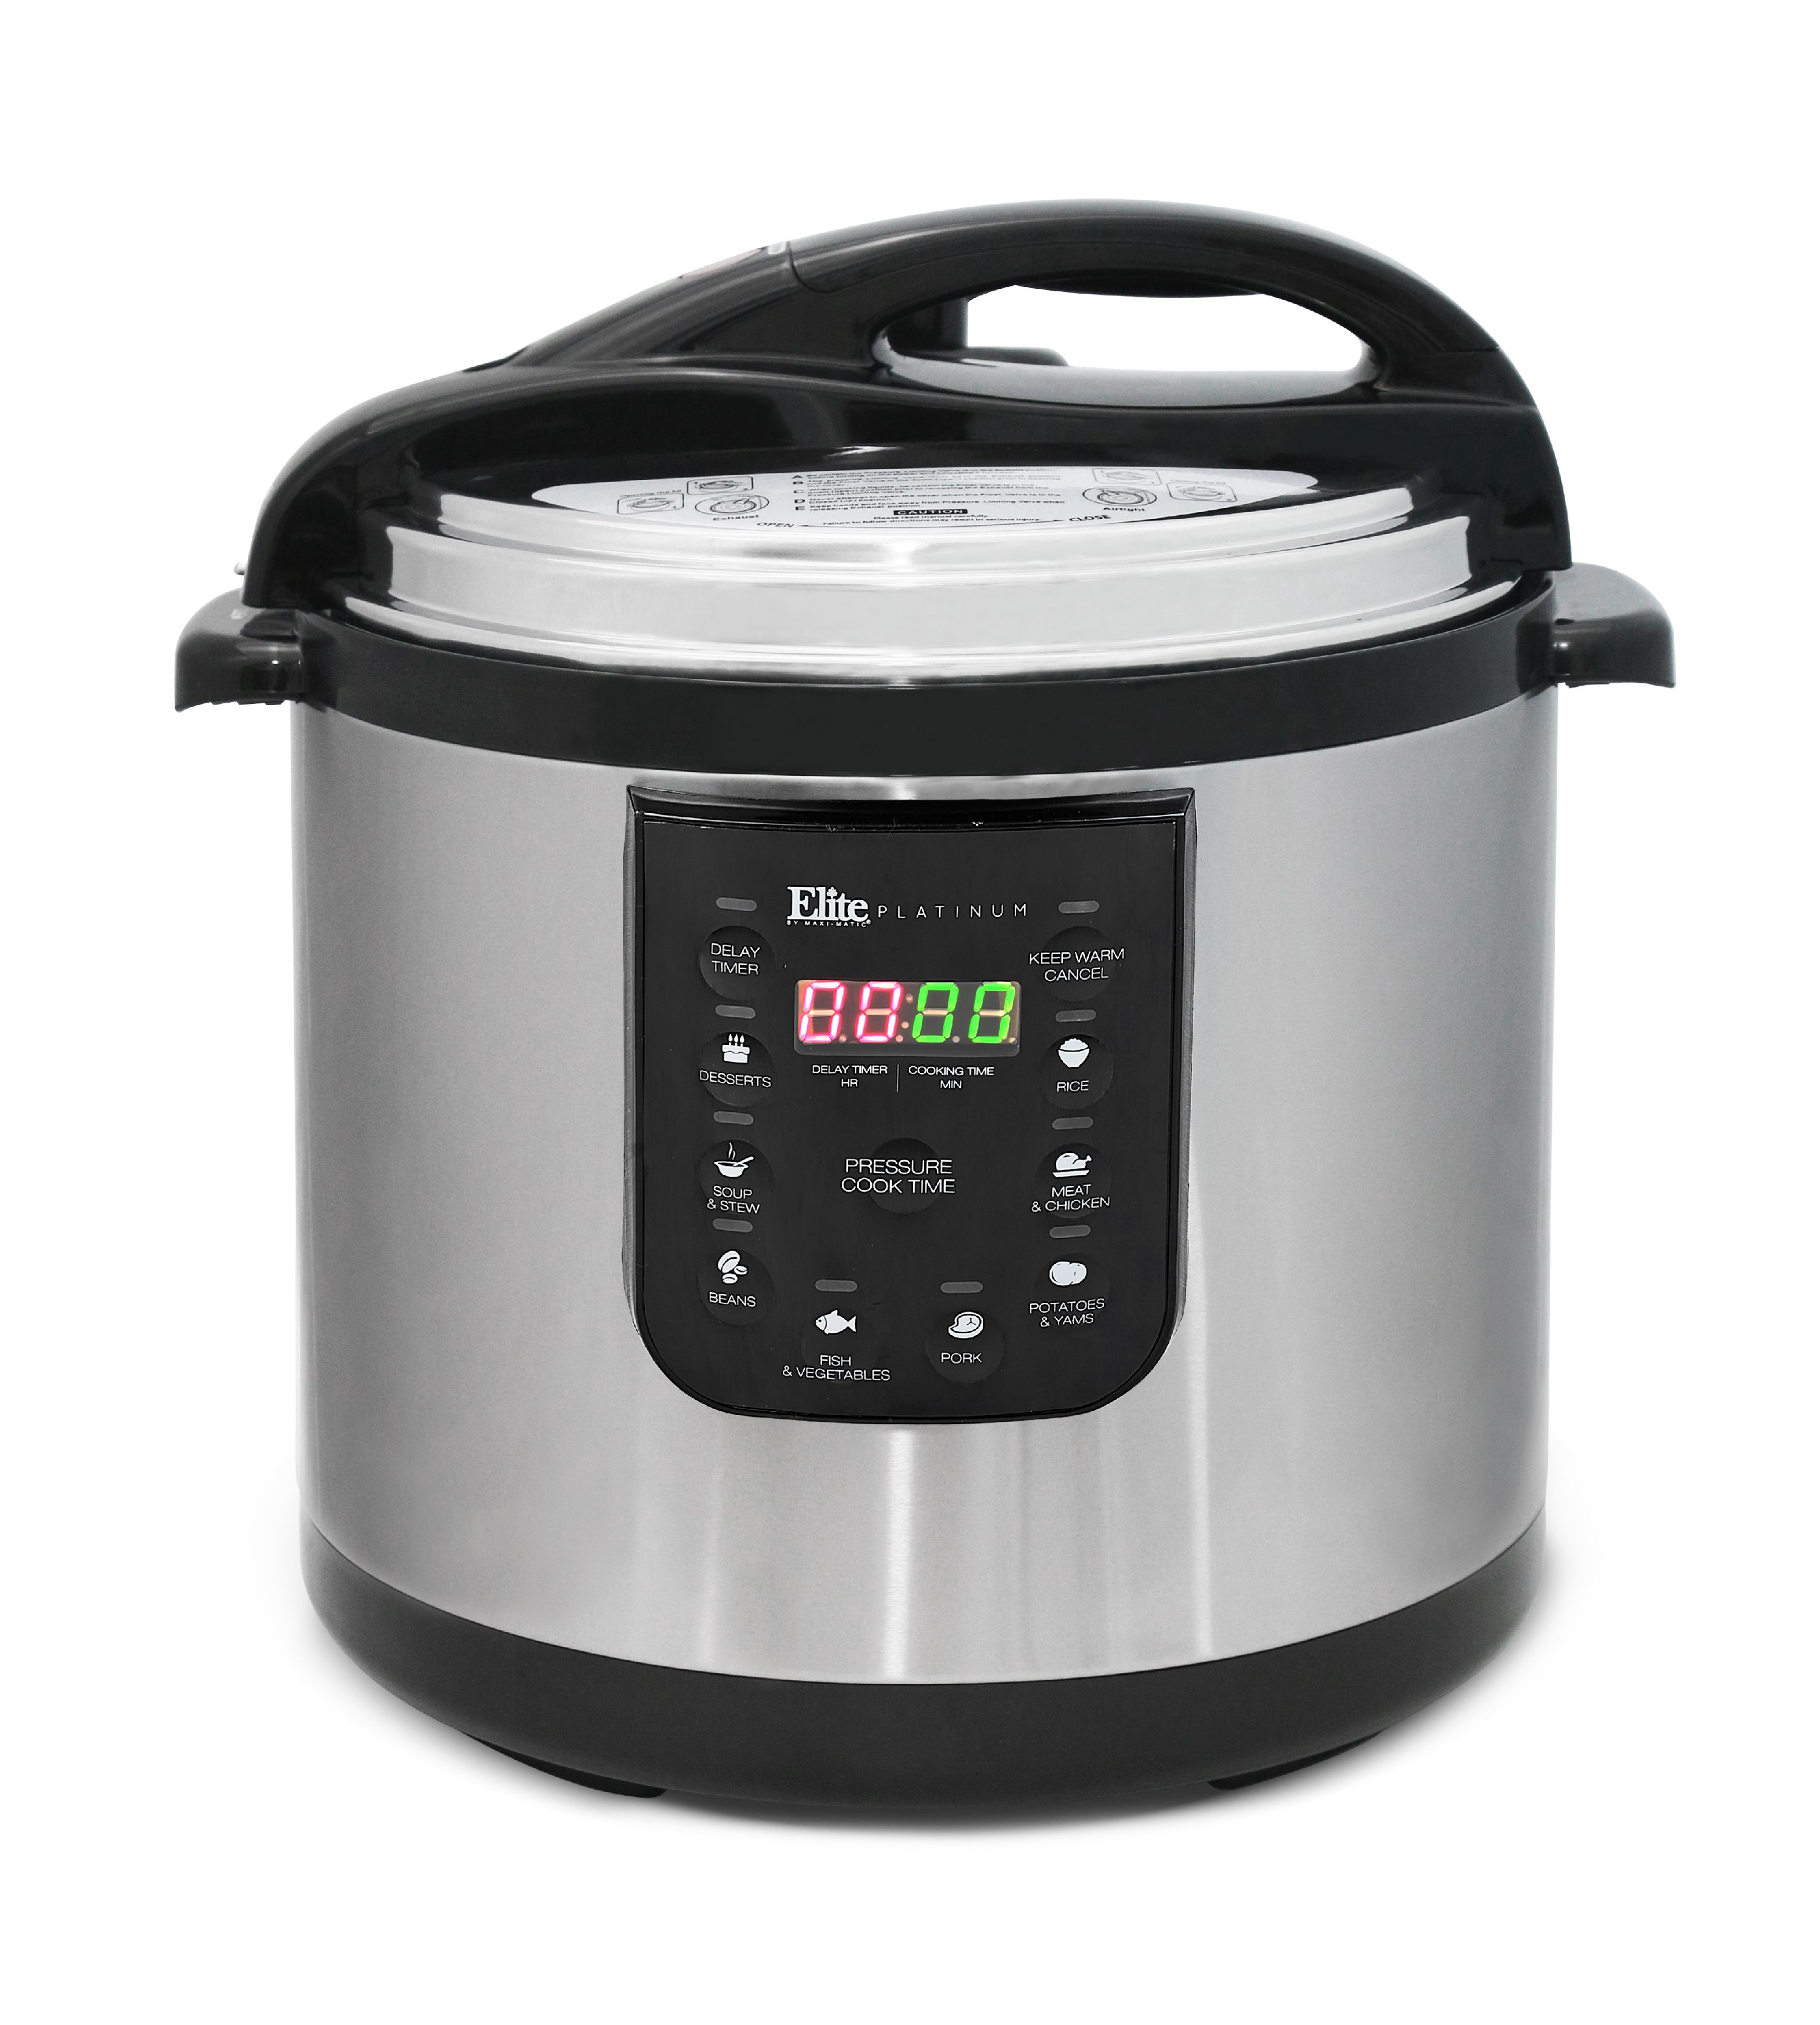 Elite Platinum NEW and IMPROVED EPC-1013 10 Quart Electric Pressure Cooker, Stainless Steel